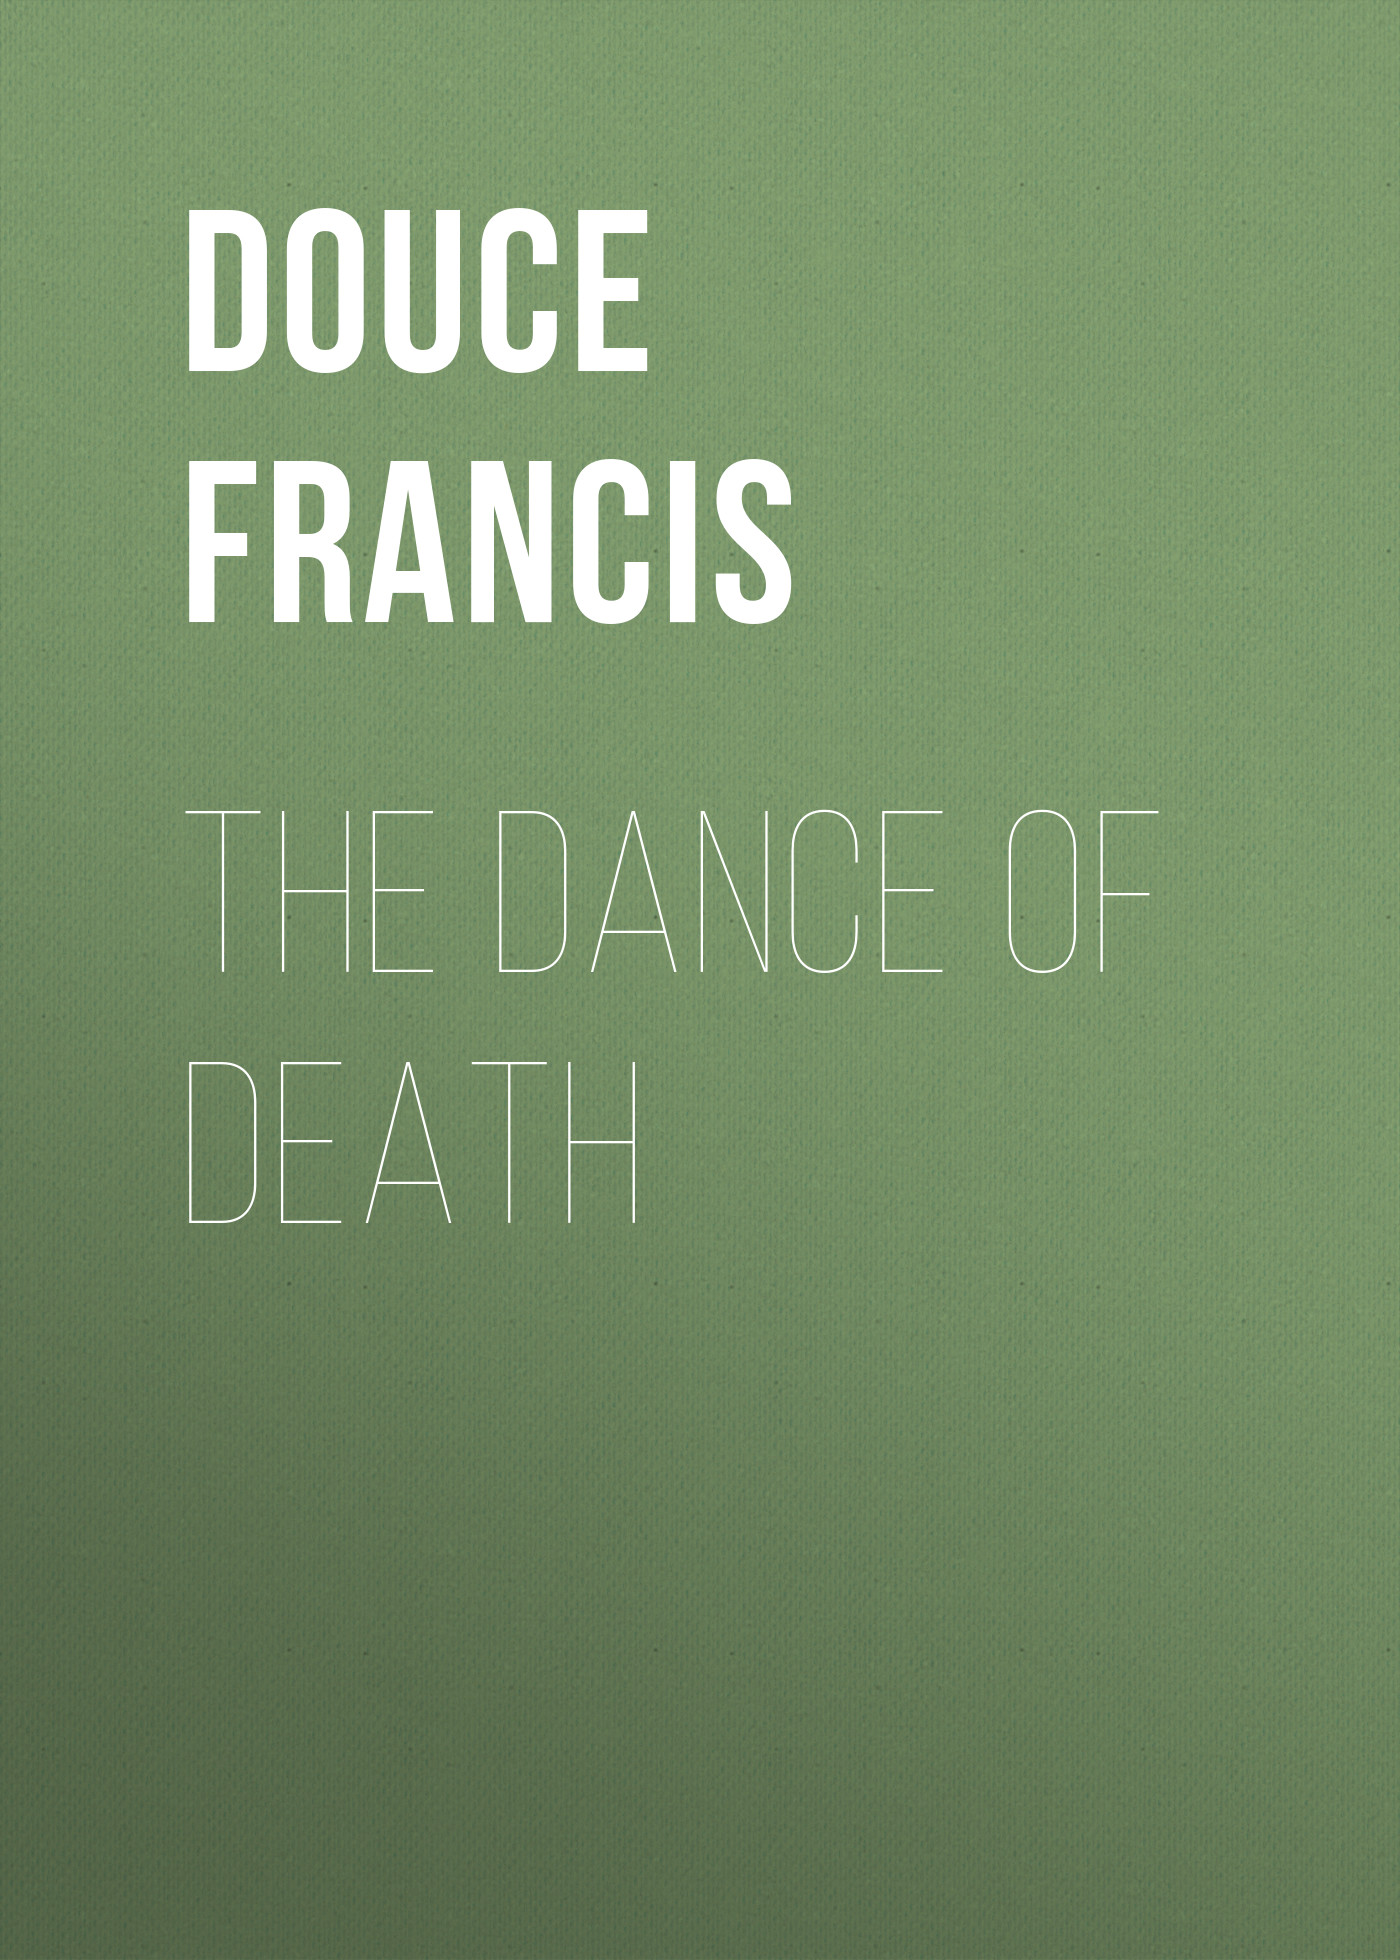 Douce Francis The Dance of Death gasquet francis aidan the eve of the reformation